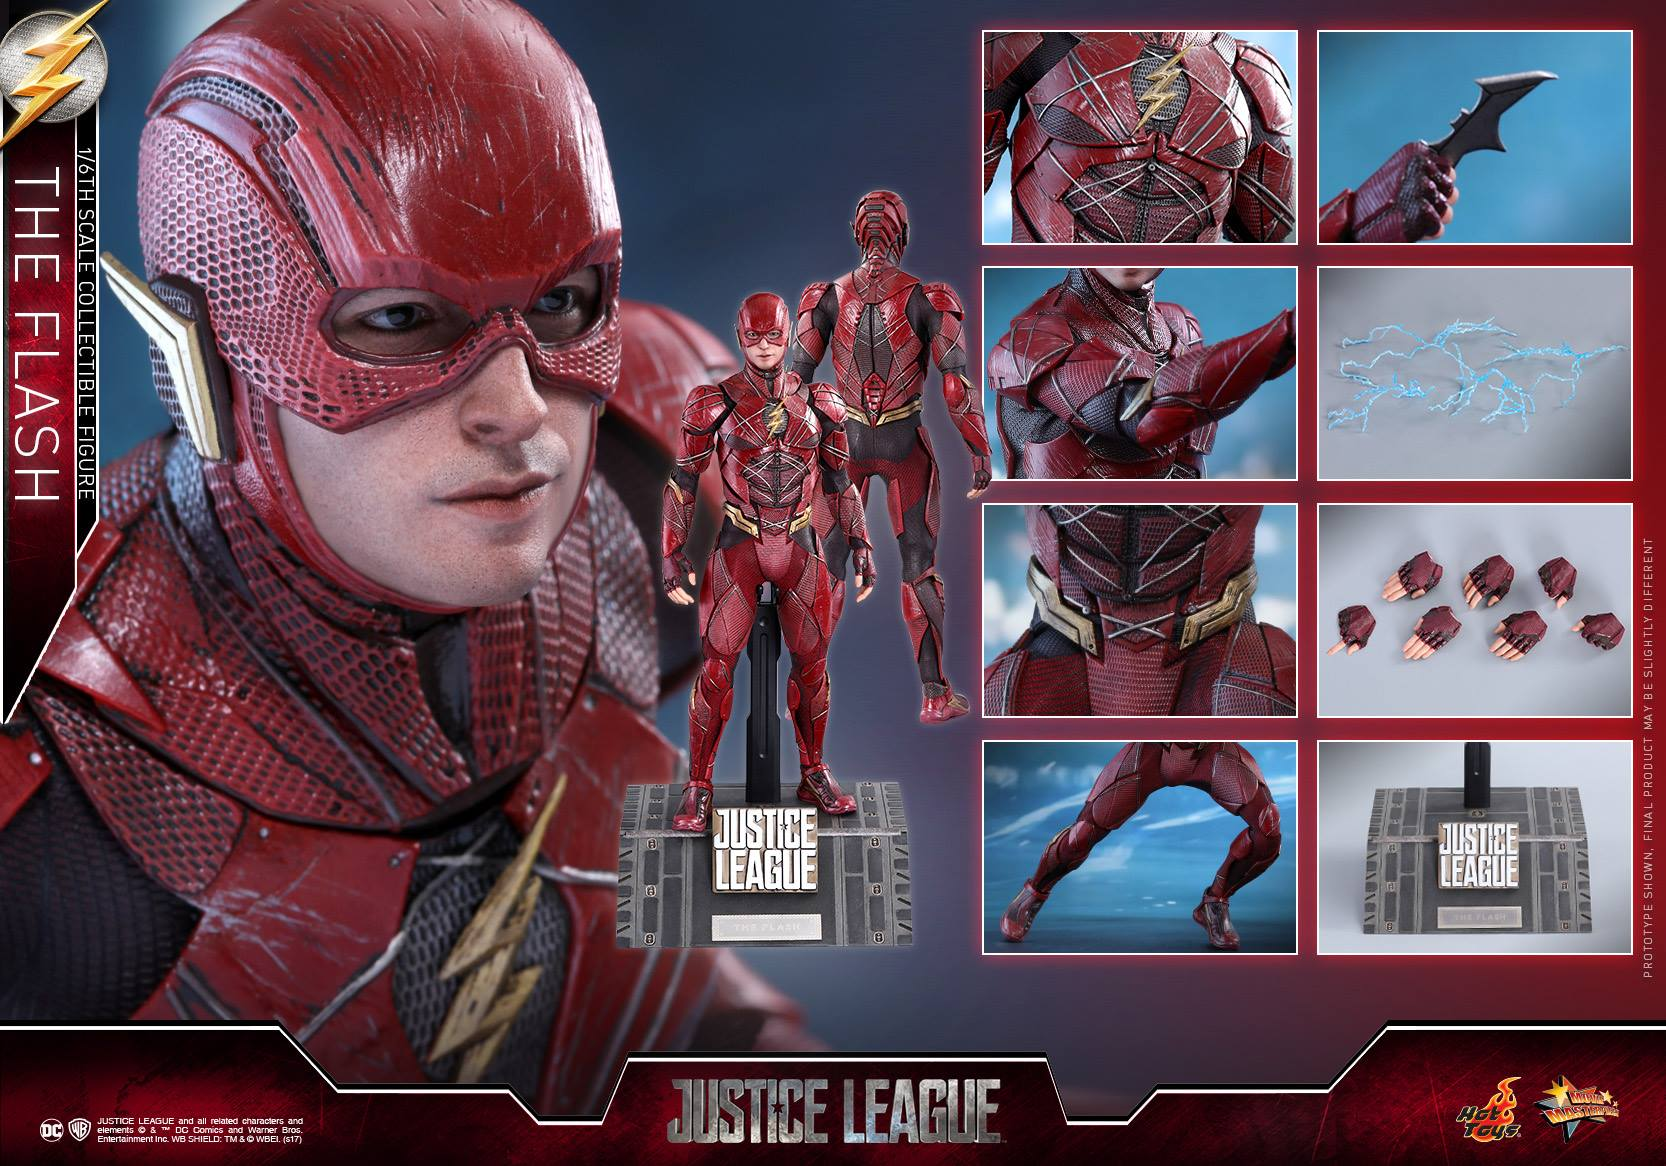 Hot-Toys-Justice-League-The-Flash-022